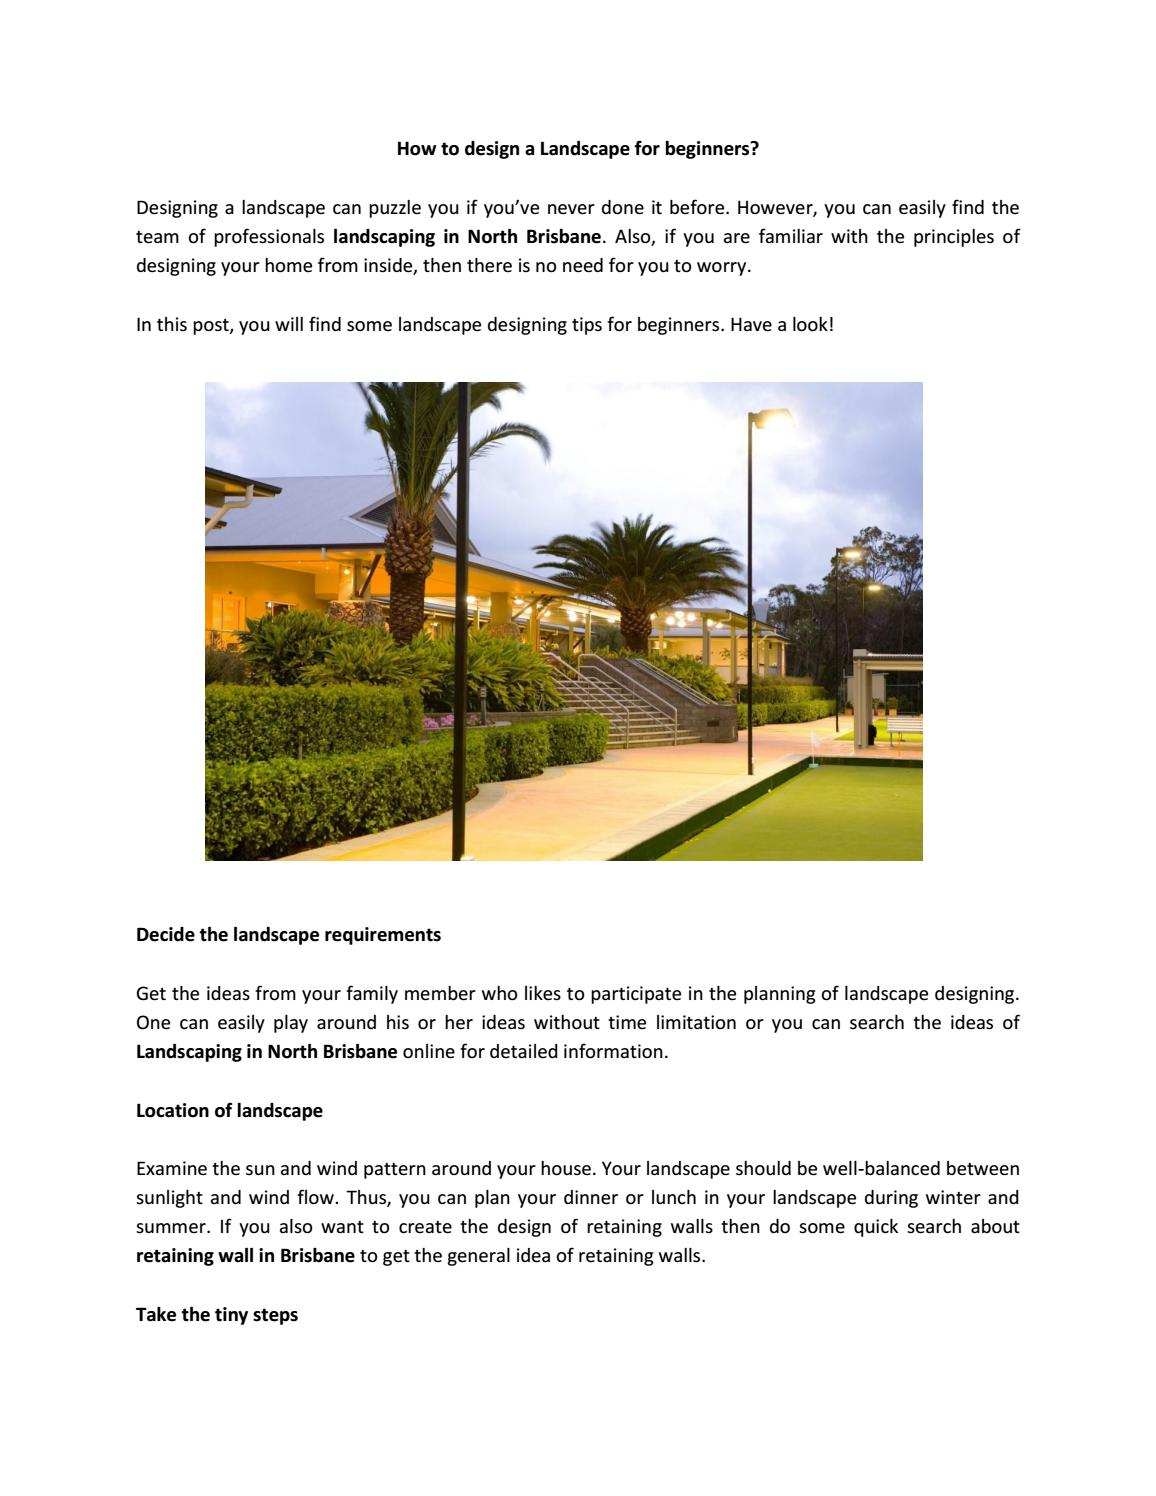 How To Design A Landscape For Beginners By Fassifern Landscapers Issuu